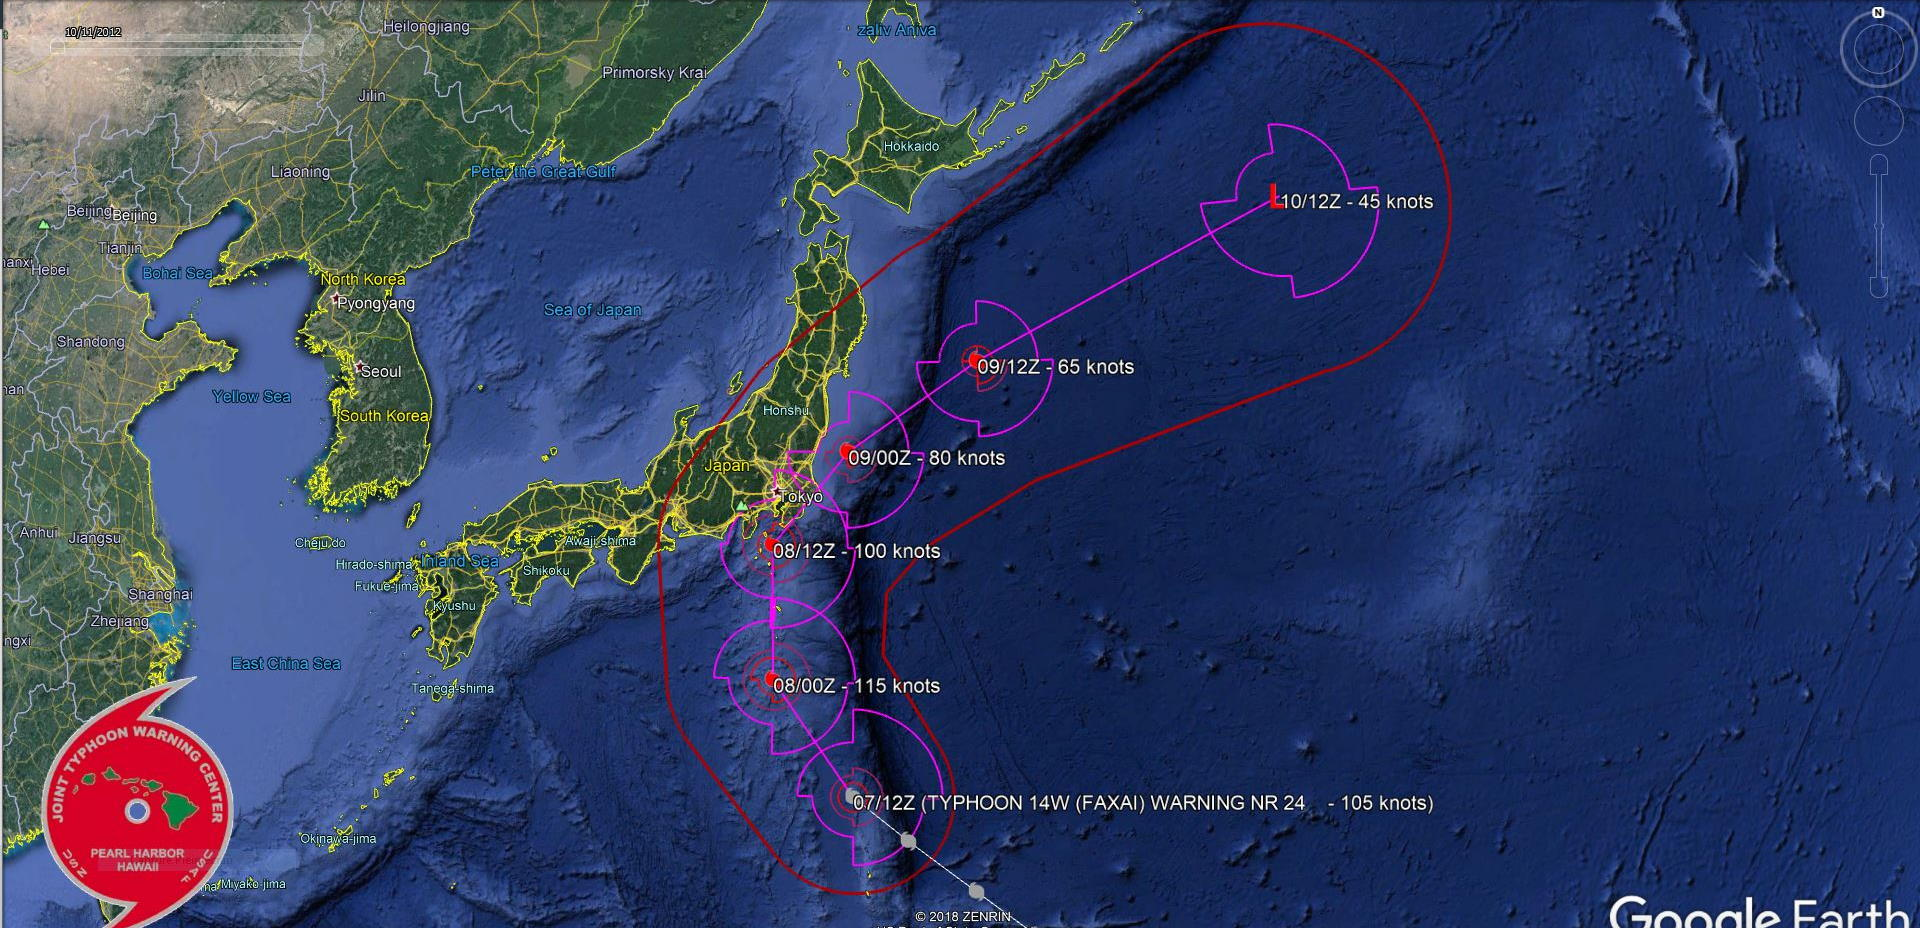 Typhoon Faxai: compact and dangerous category 3, rapidly approaching Tokyo area within 24h